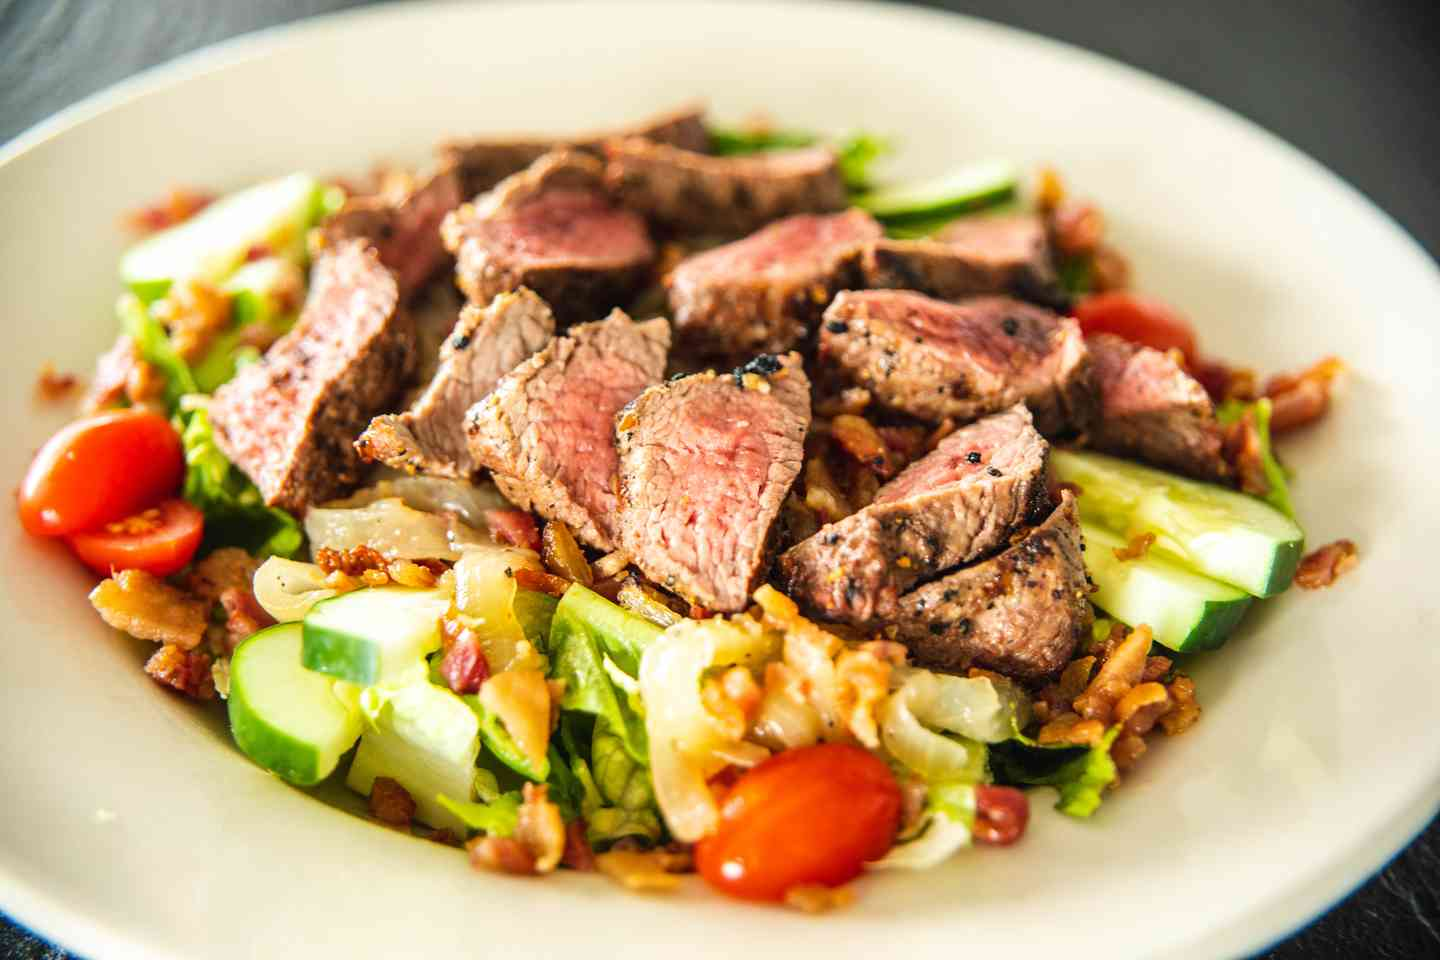 657 Steak Salad*